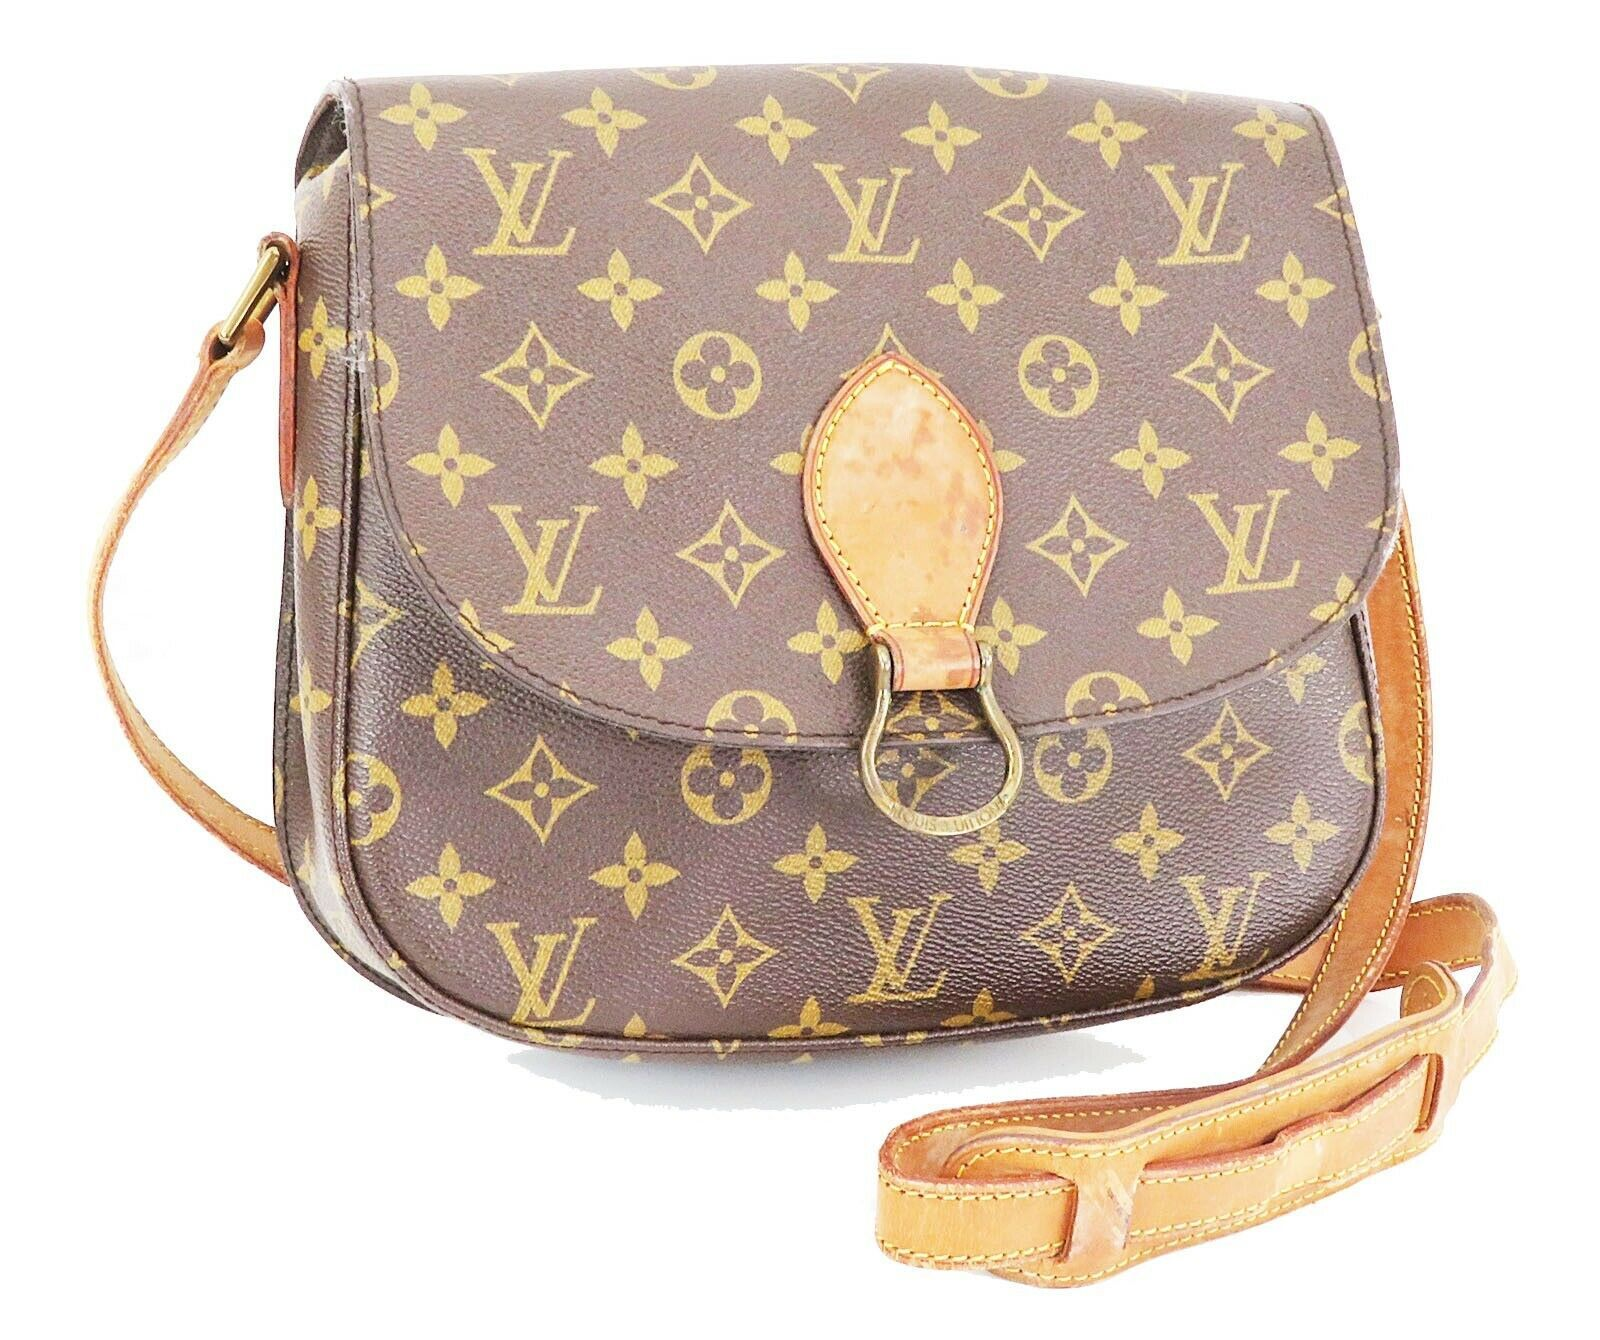 Authentic LOUIS VUITTON Saint Cloud GM Monogram Shoulder Bag #32978